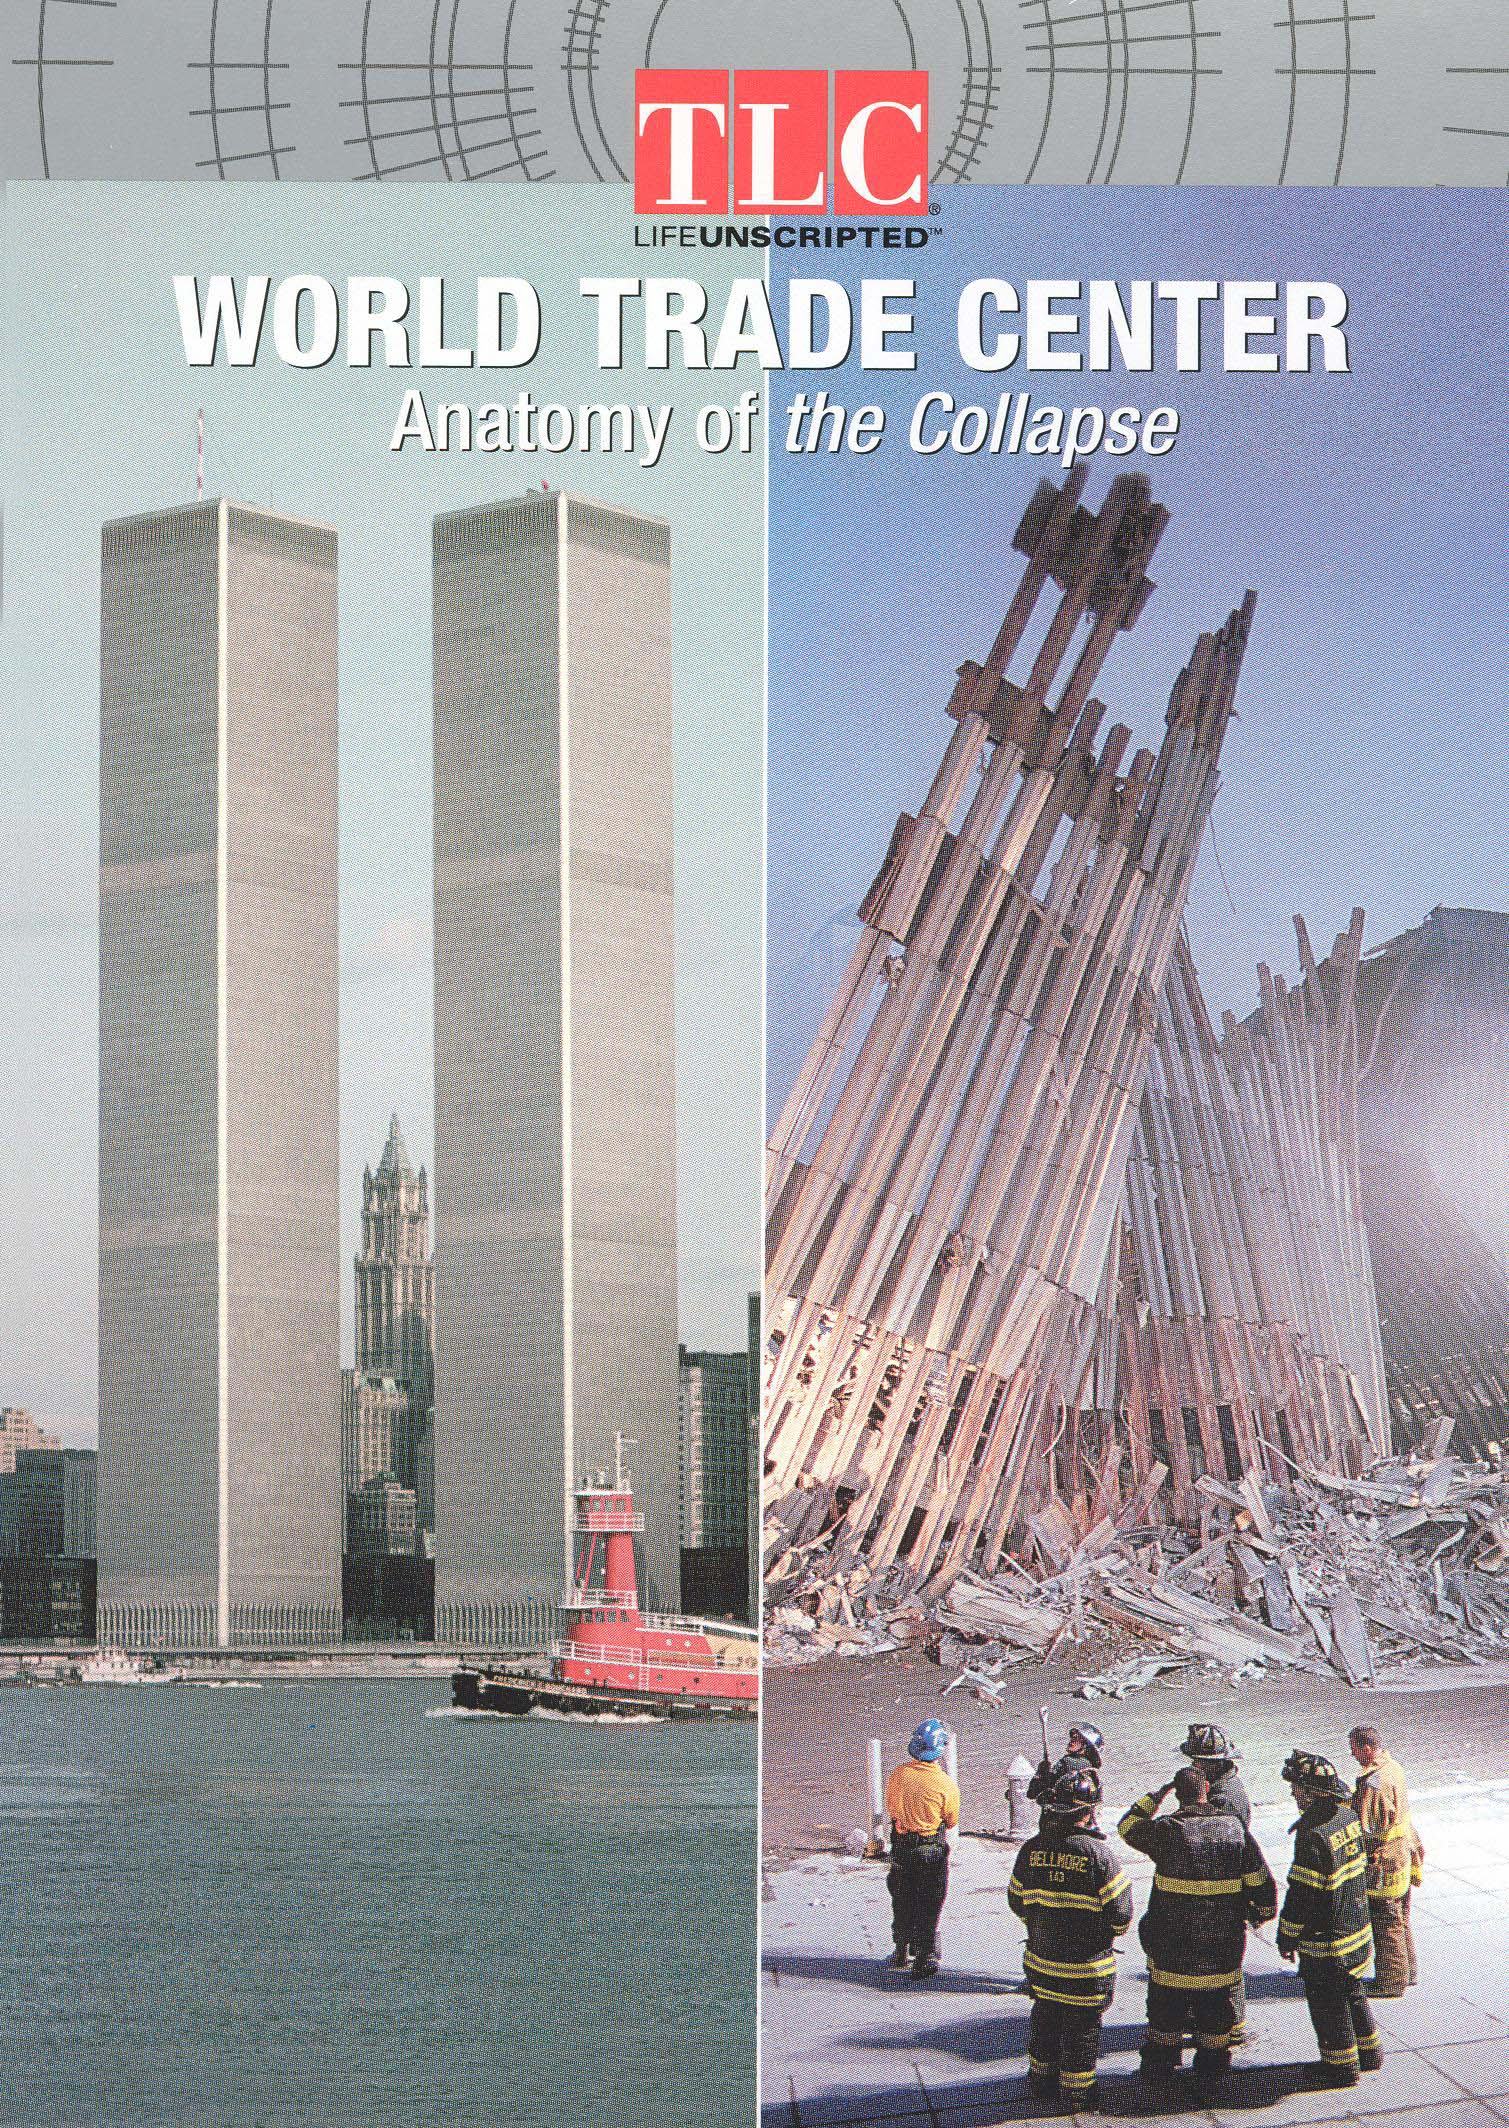 World Trade Center: Anatomy of the Collapse